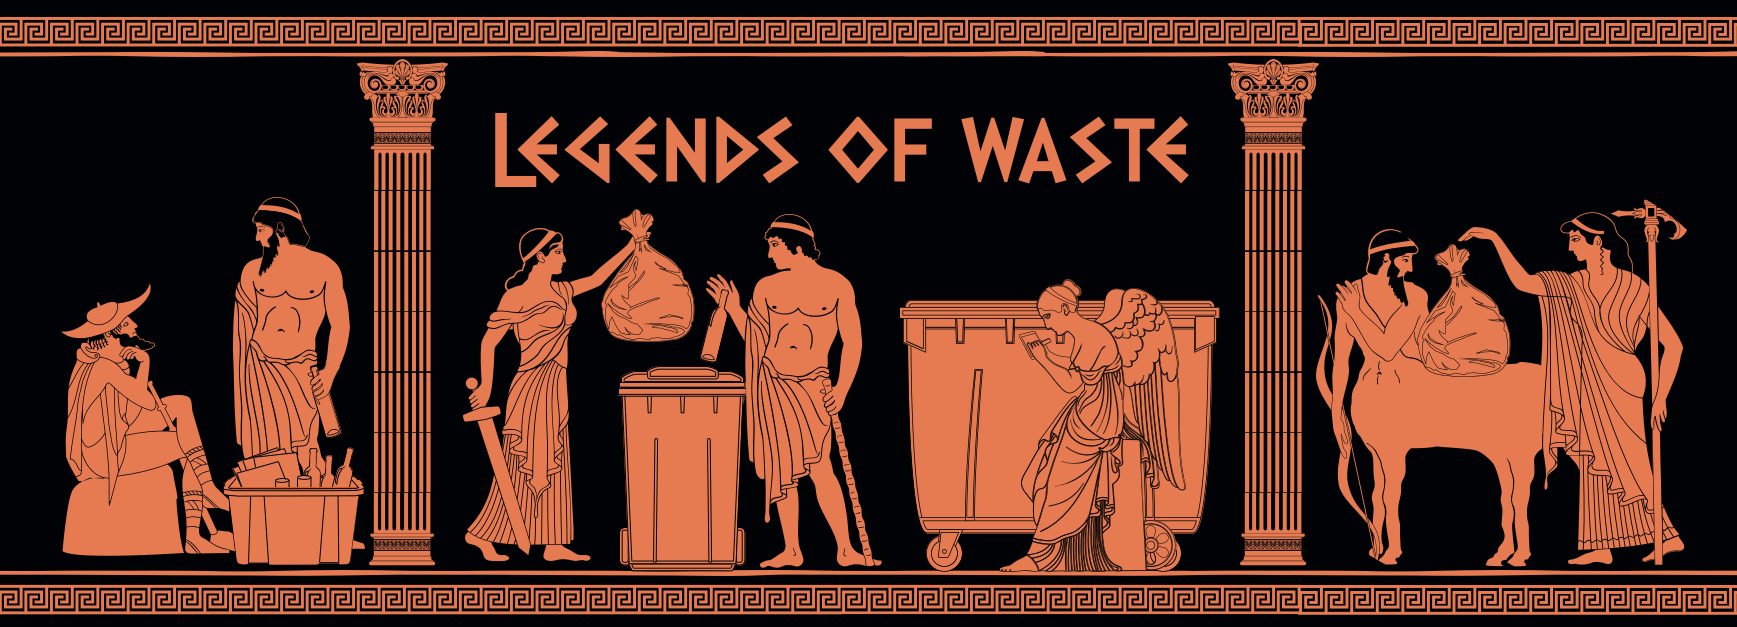 Resource Hot 100 2019: #LegendsofWaste